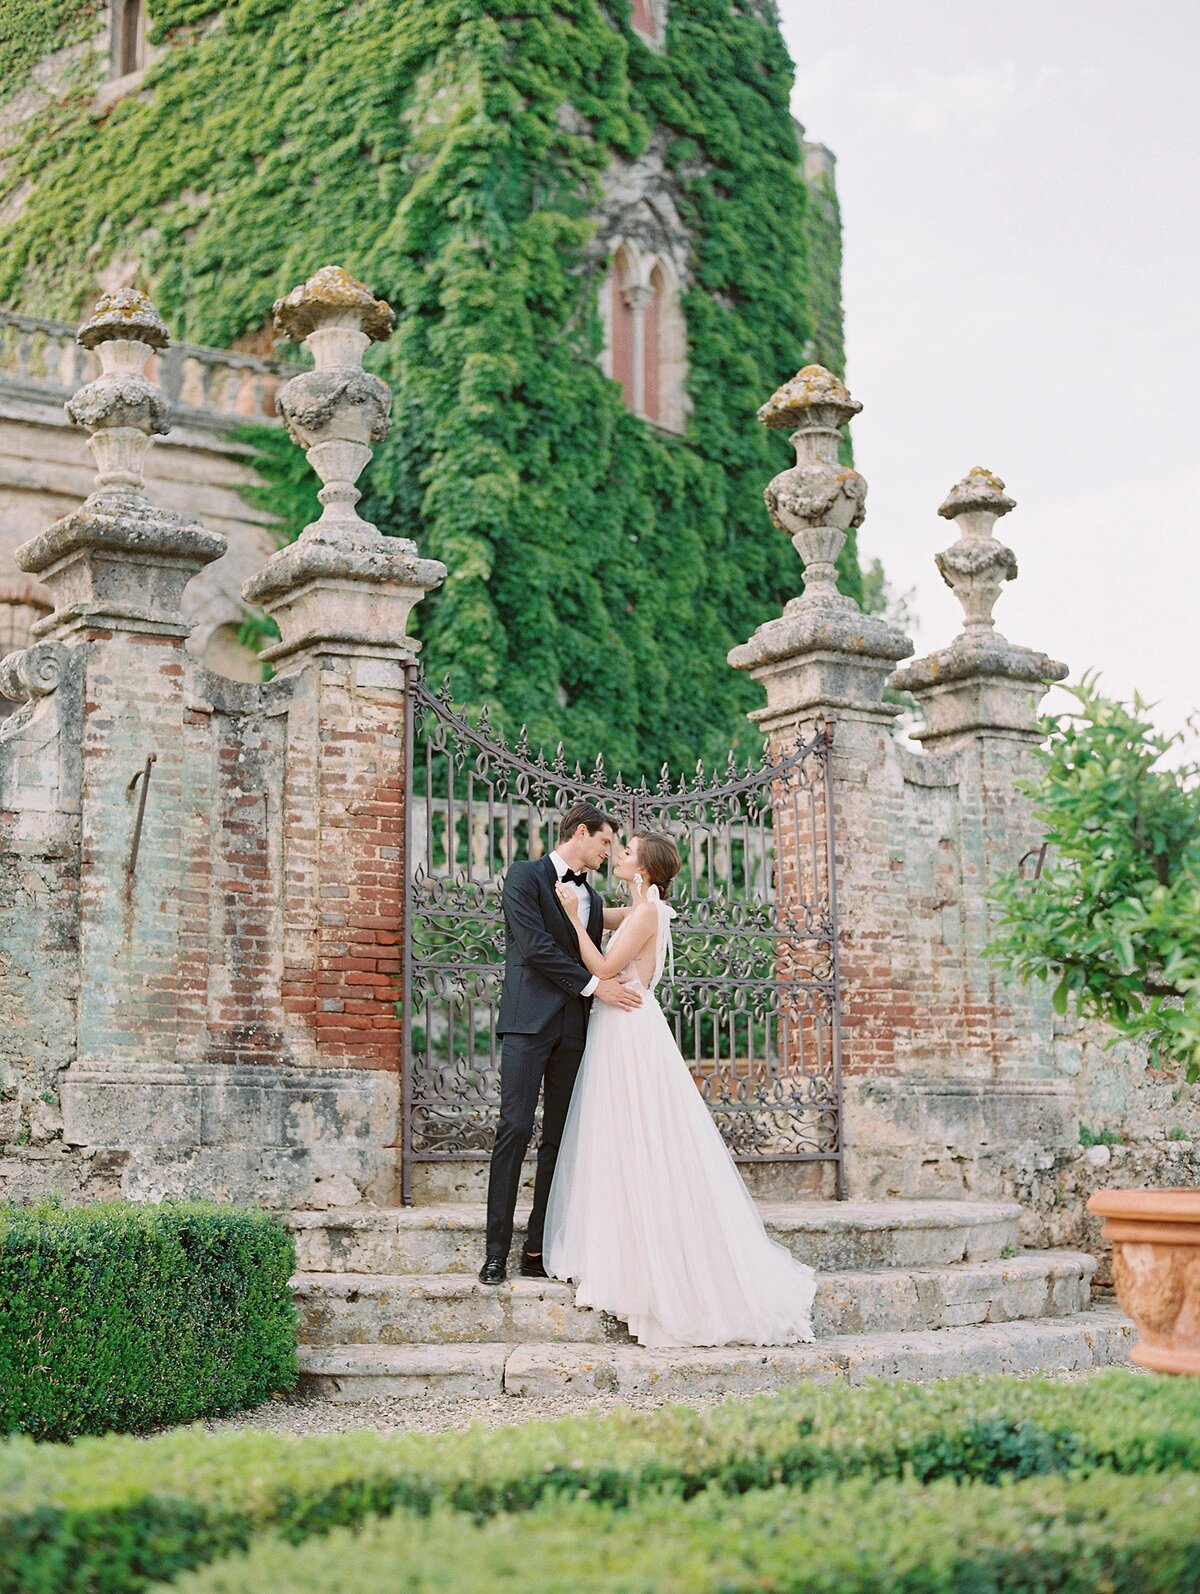 NKT-Events_Wedding-Inspiration-Editorial_Castello-di-Celsa_0467